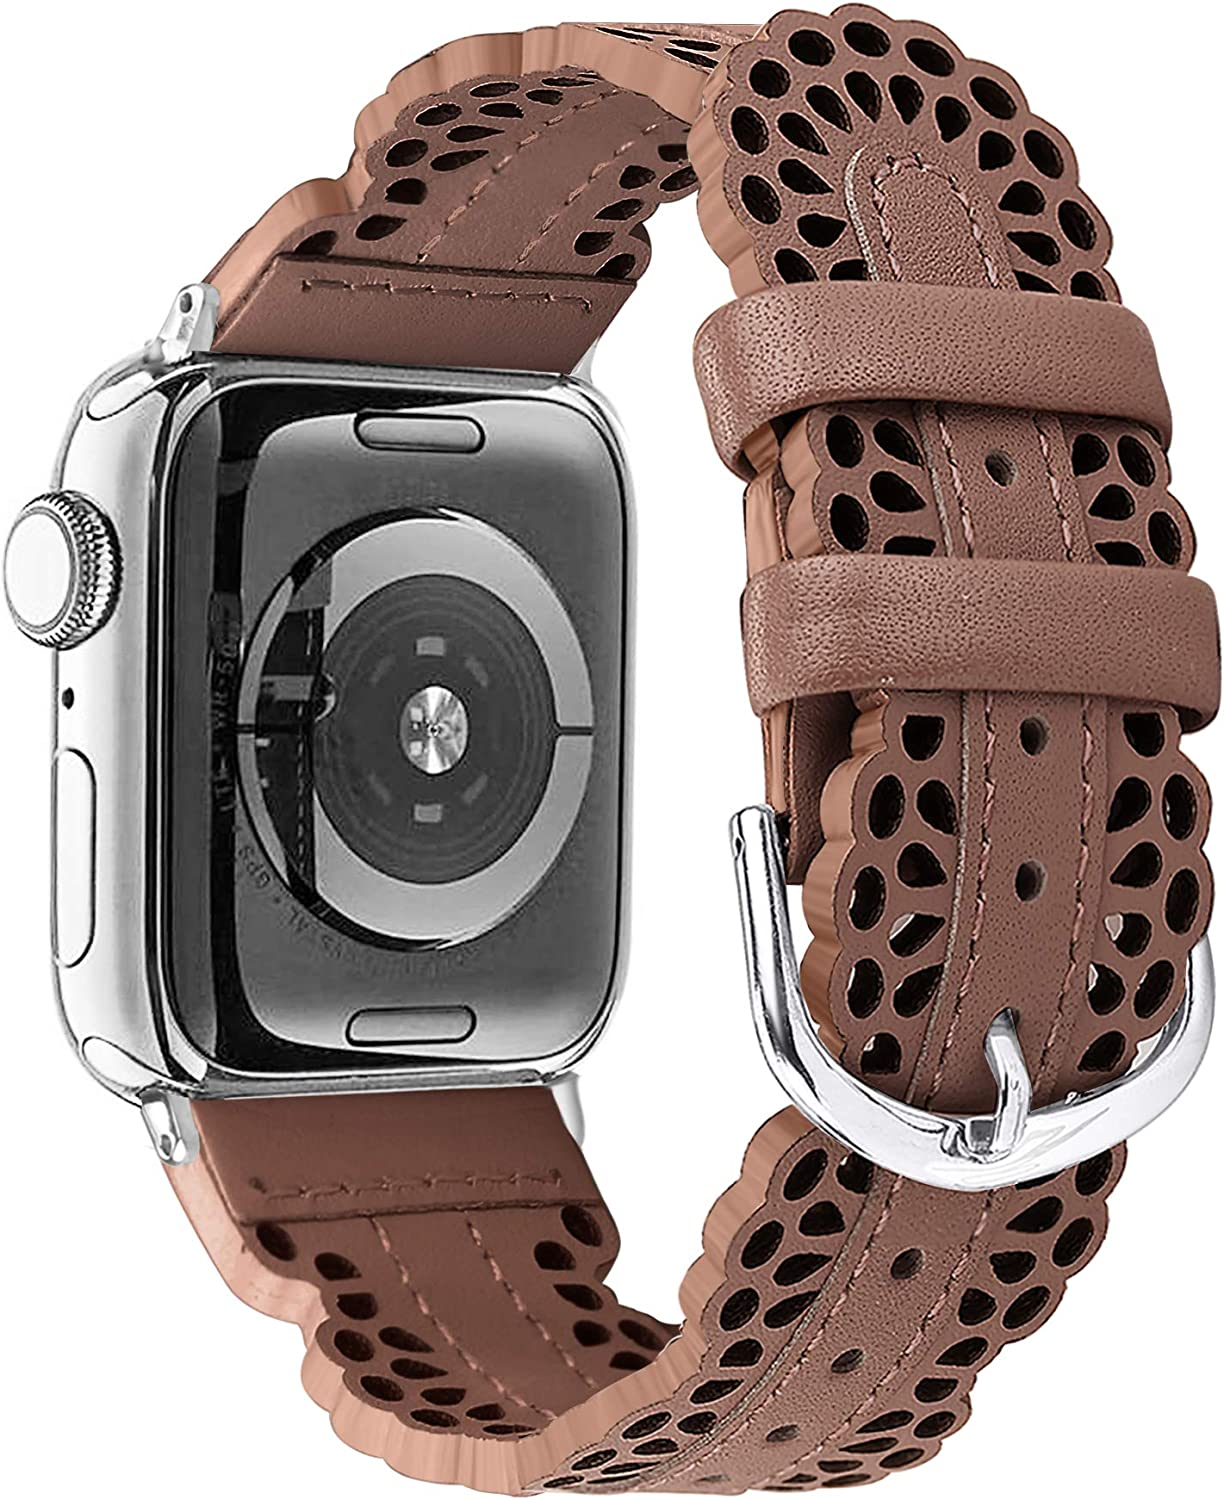 Secbolt Leather Bands Compatible with Apple Watch Band 38mm 40mm iWatch SE Series 6 5 4 3 2 1, Breathable Chic Lace Leather Strap for Women, Brown